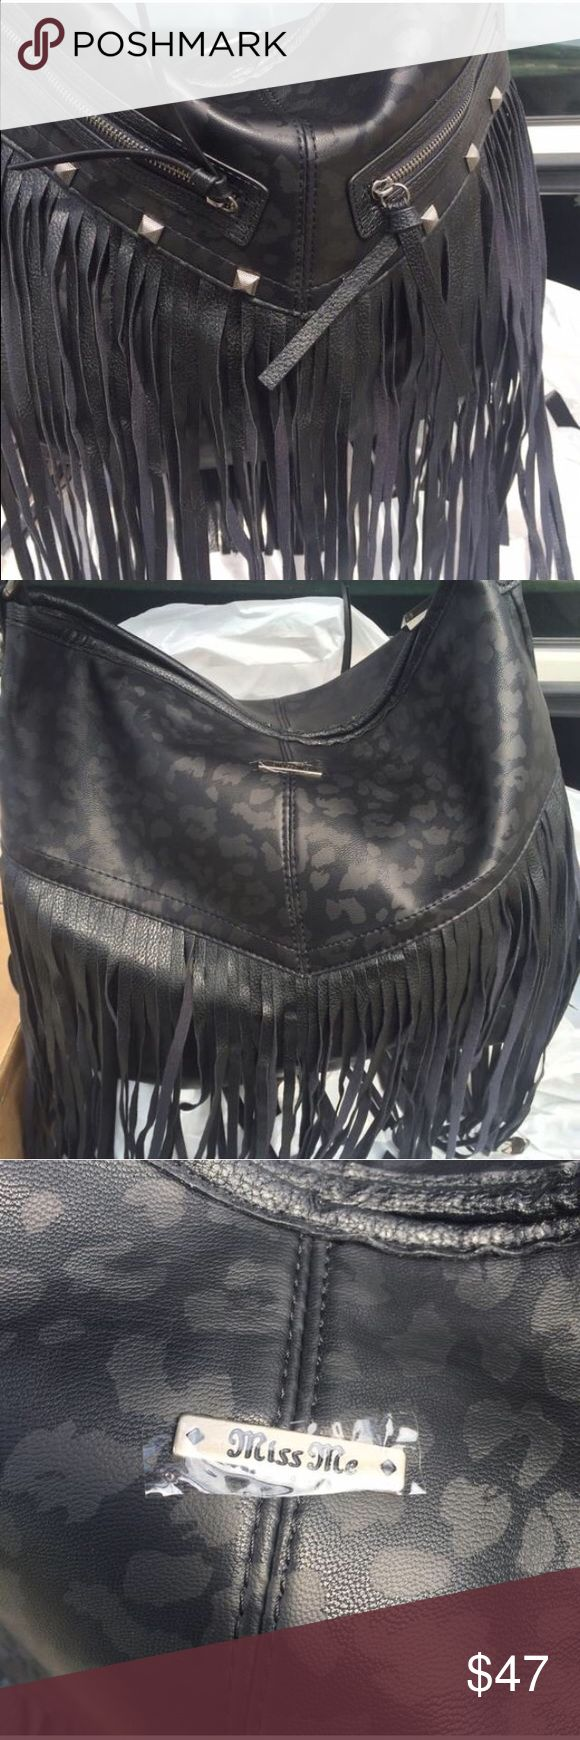 NWT Miss me purse New with tags. Plastic over name plate for protection. Miss Me Bags Shoulder Bags